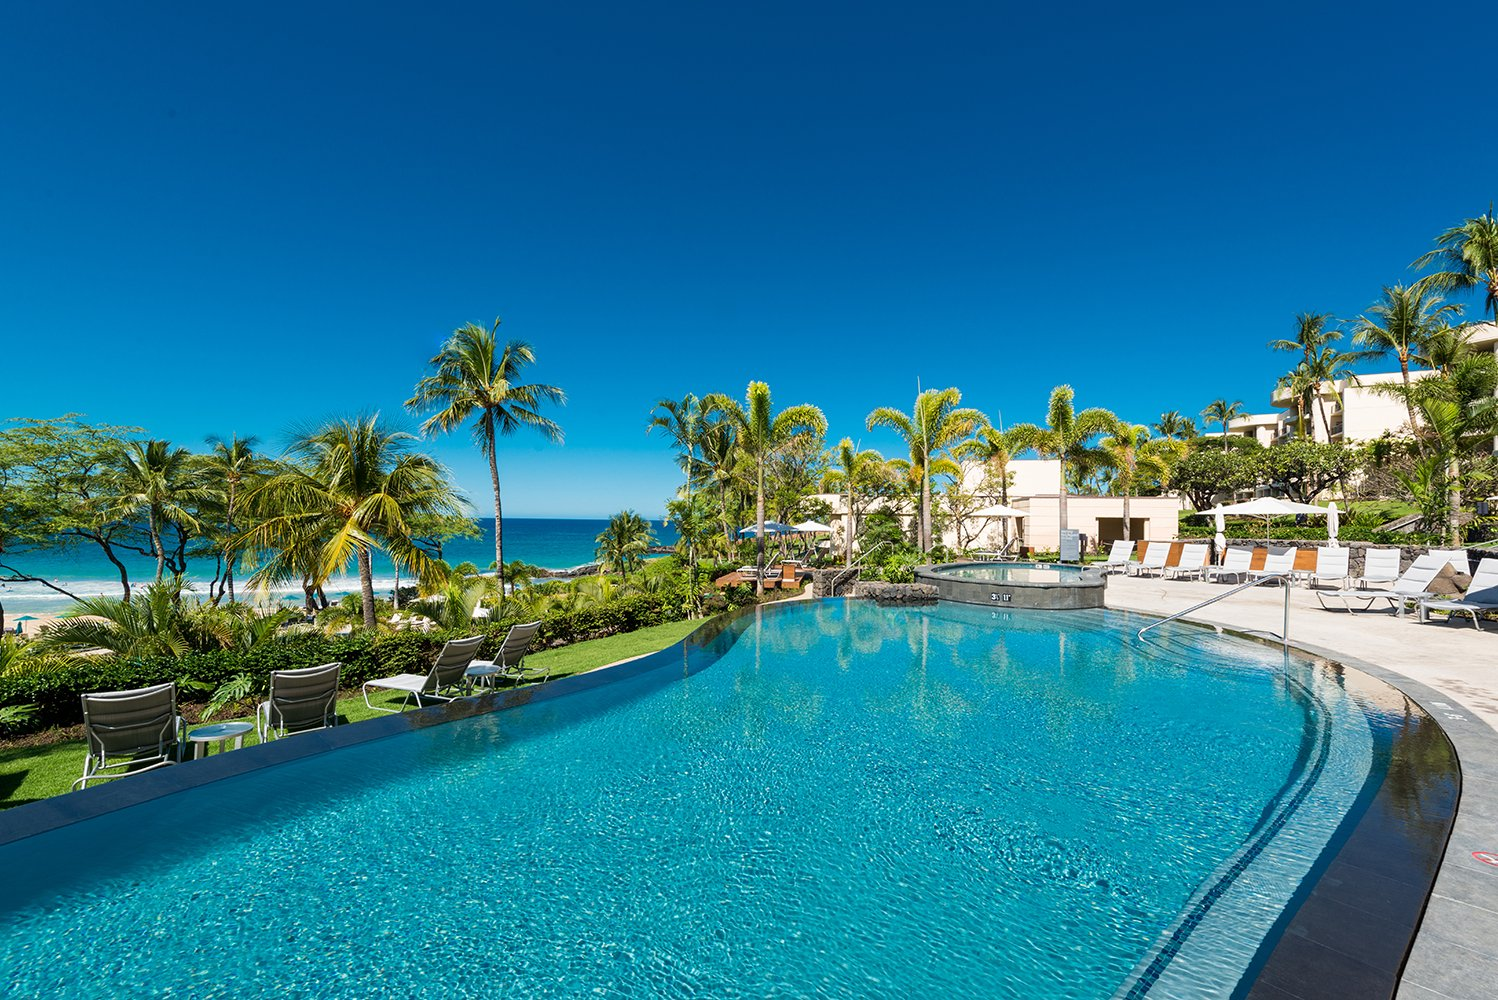 There will be a new adults-only pool with a poolside experience overlooking the Hapuna Beach.